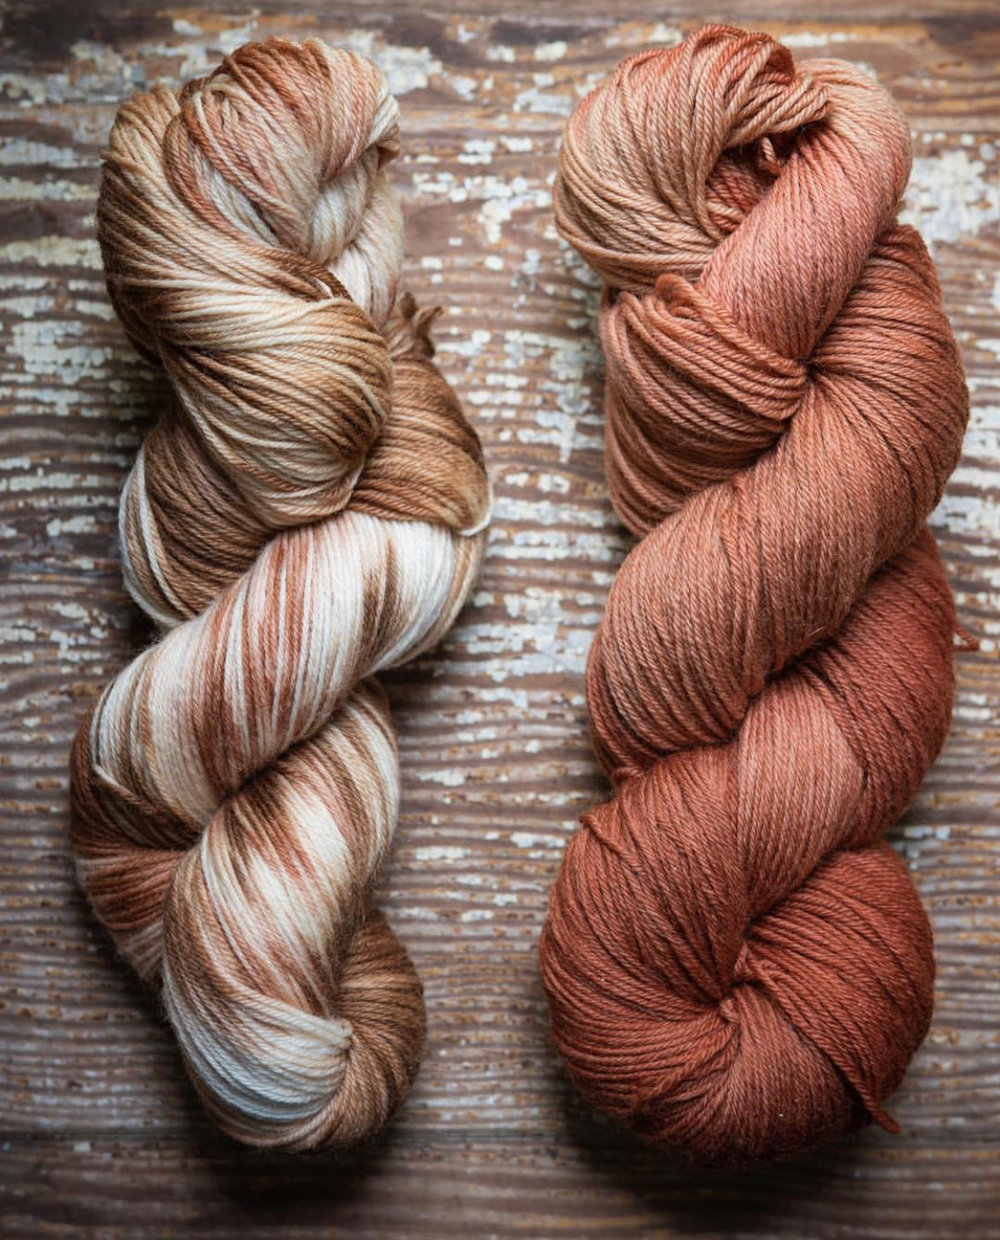 Playing with techniques. Left: Twist Dyeing Madder + Black Tea, Right: Dip Dyeing Madder